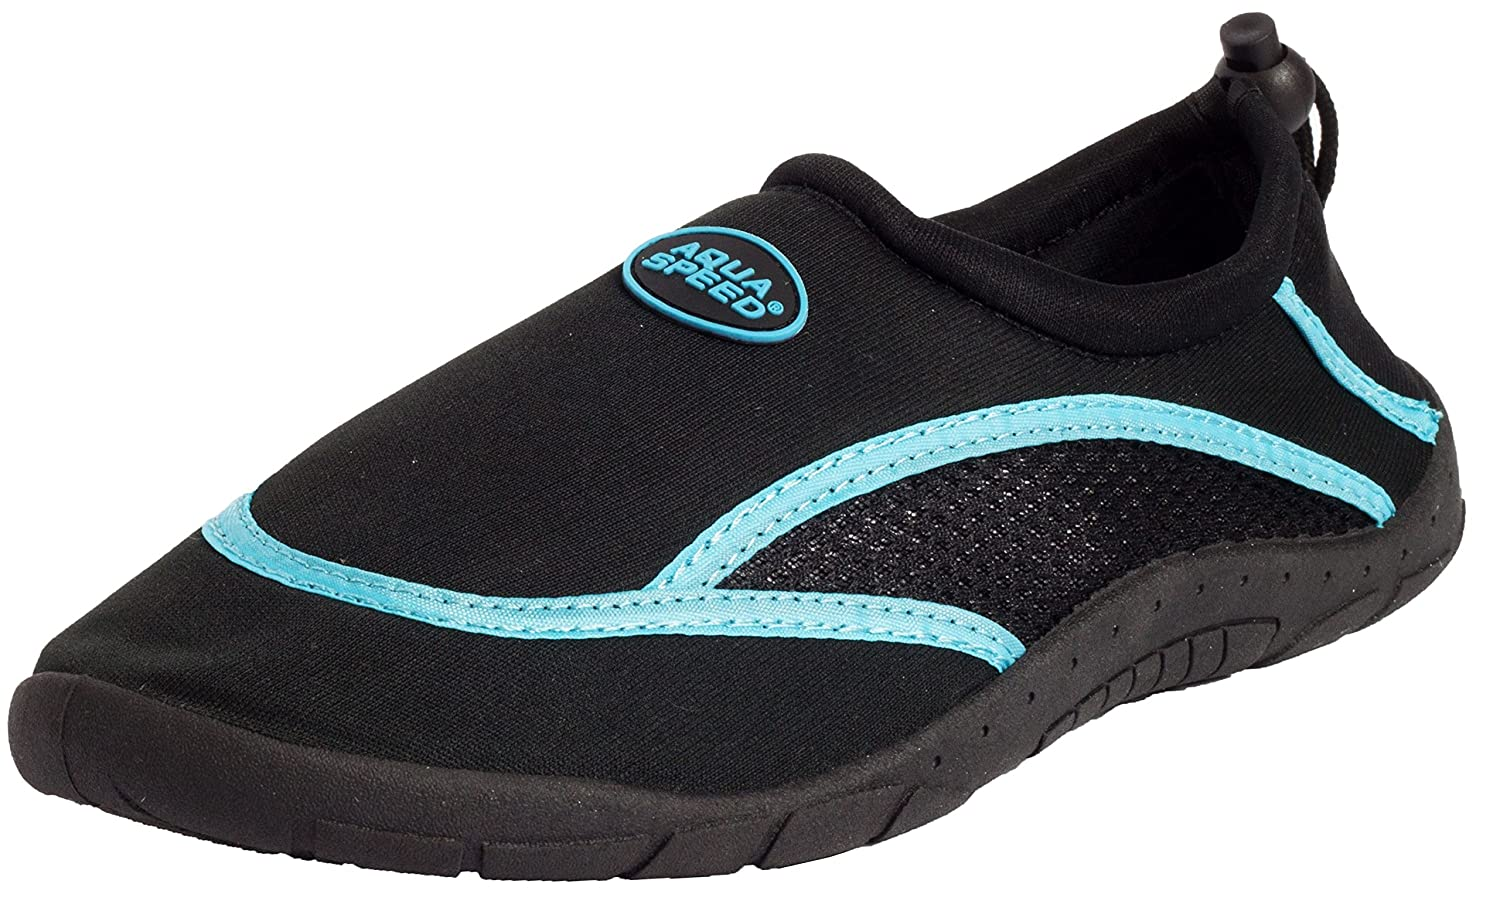 AQUA-SPEED Zapatillas Acuáticas - Playa - Agua - Acústica Ideal Para Proteger Los Pies #As3: Amazon.es: Zapatos y complementos